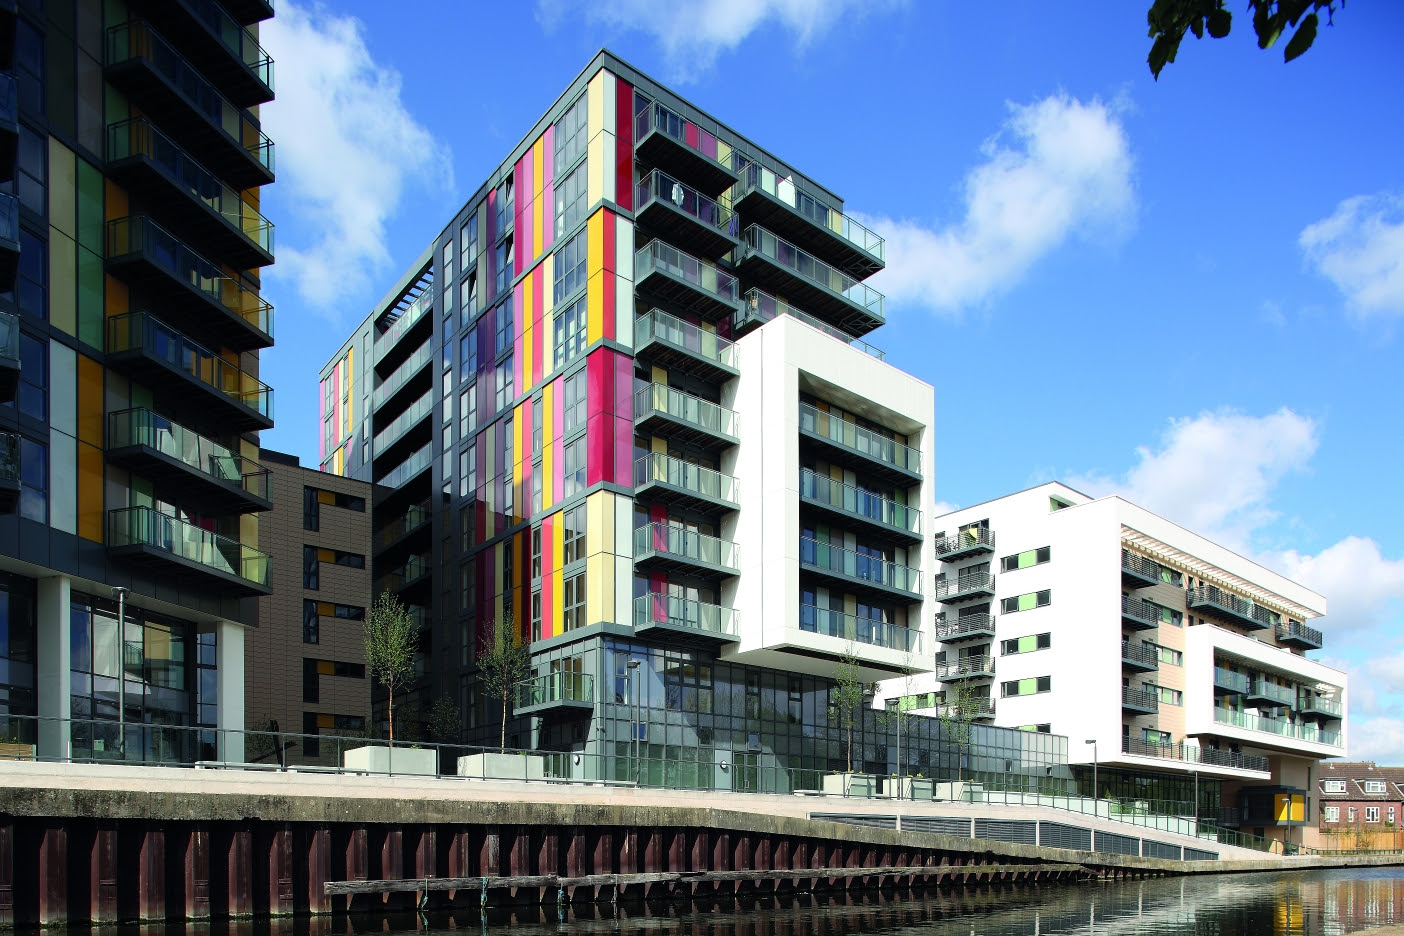 Matchmakers Wharf 2